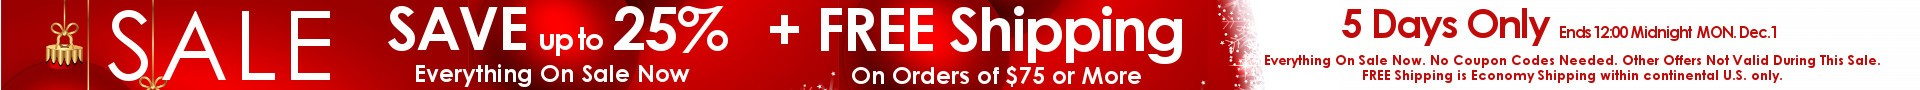 SALE - SAVE up to 25% Plus FREE Shipping on Orders of $75 or More - 5 Days Only - Ends Monday 12/1. Free Shipping is Economy Shipping to continential U.S. only. Other coupons and specials not valid with this sale.